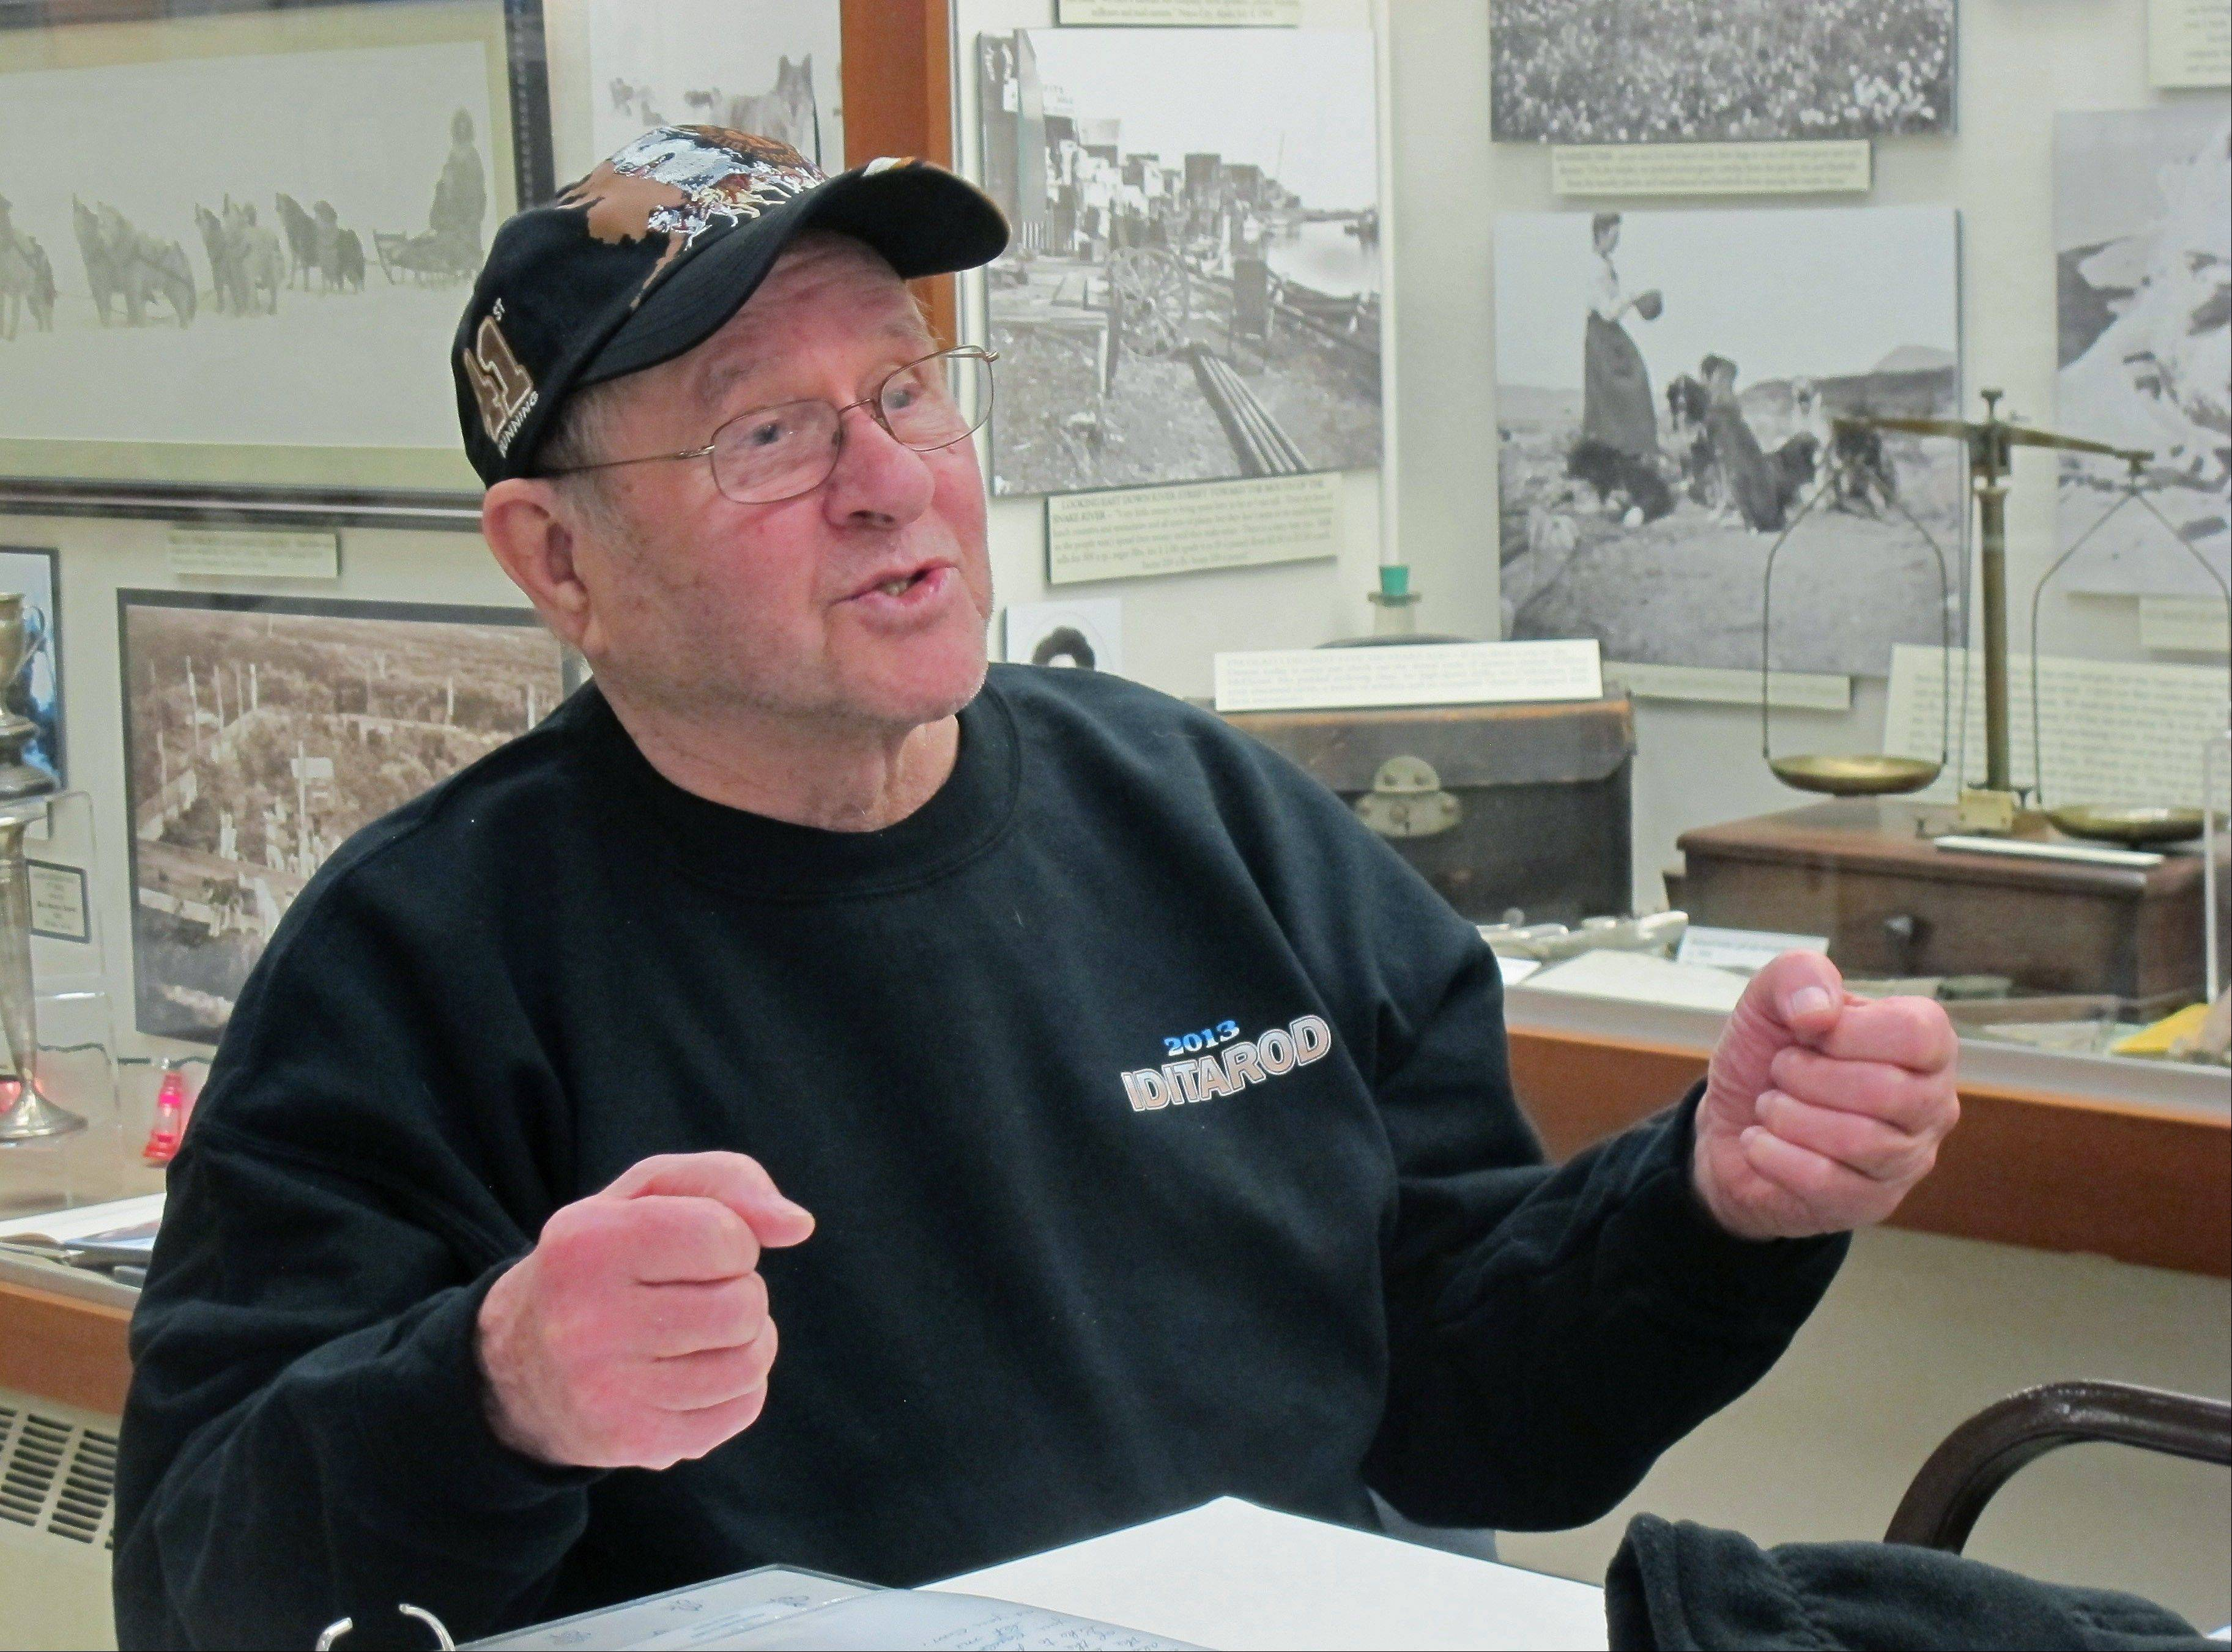 Howard Farley speaks about the history of the Iditarod Trail Sled Dog Race during a presentation at the Carrie M. McLain Memorial Museum in Nome, Alaska.